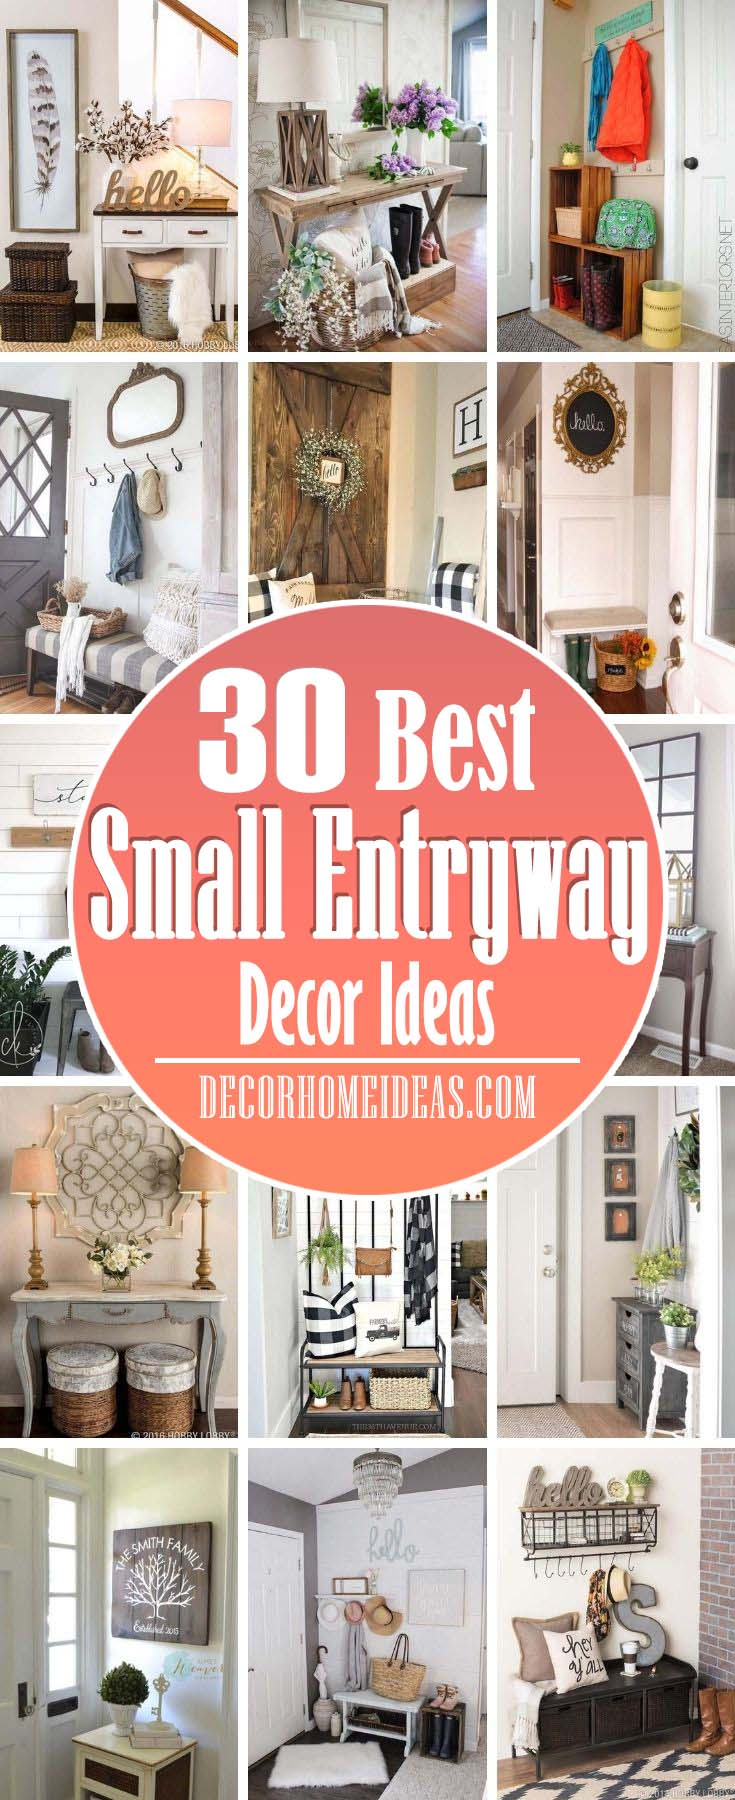 Best Small Entryway Decor Ideas. If you don't know how to decorate your small entryway so that it looks bigger and is more appealing, don't worry we've got all the best ideas here. #decorhomeideas